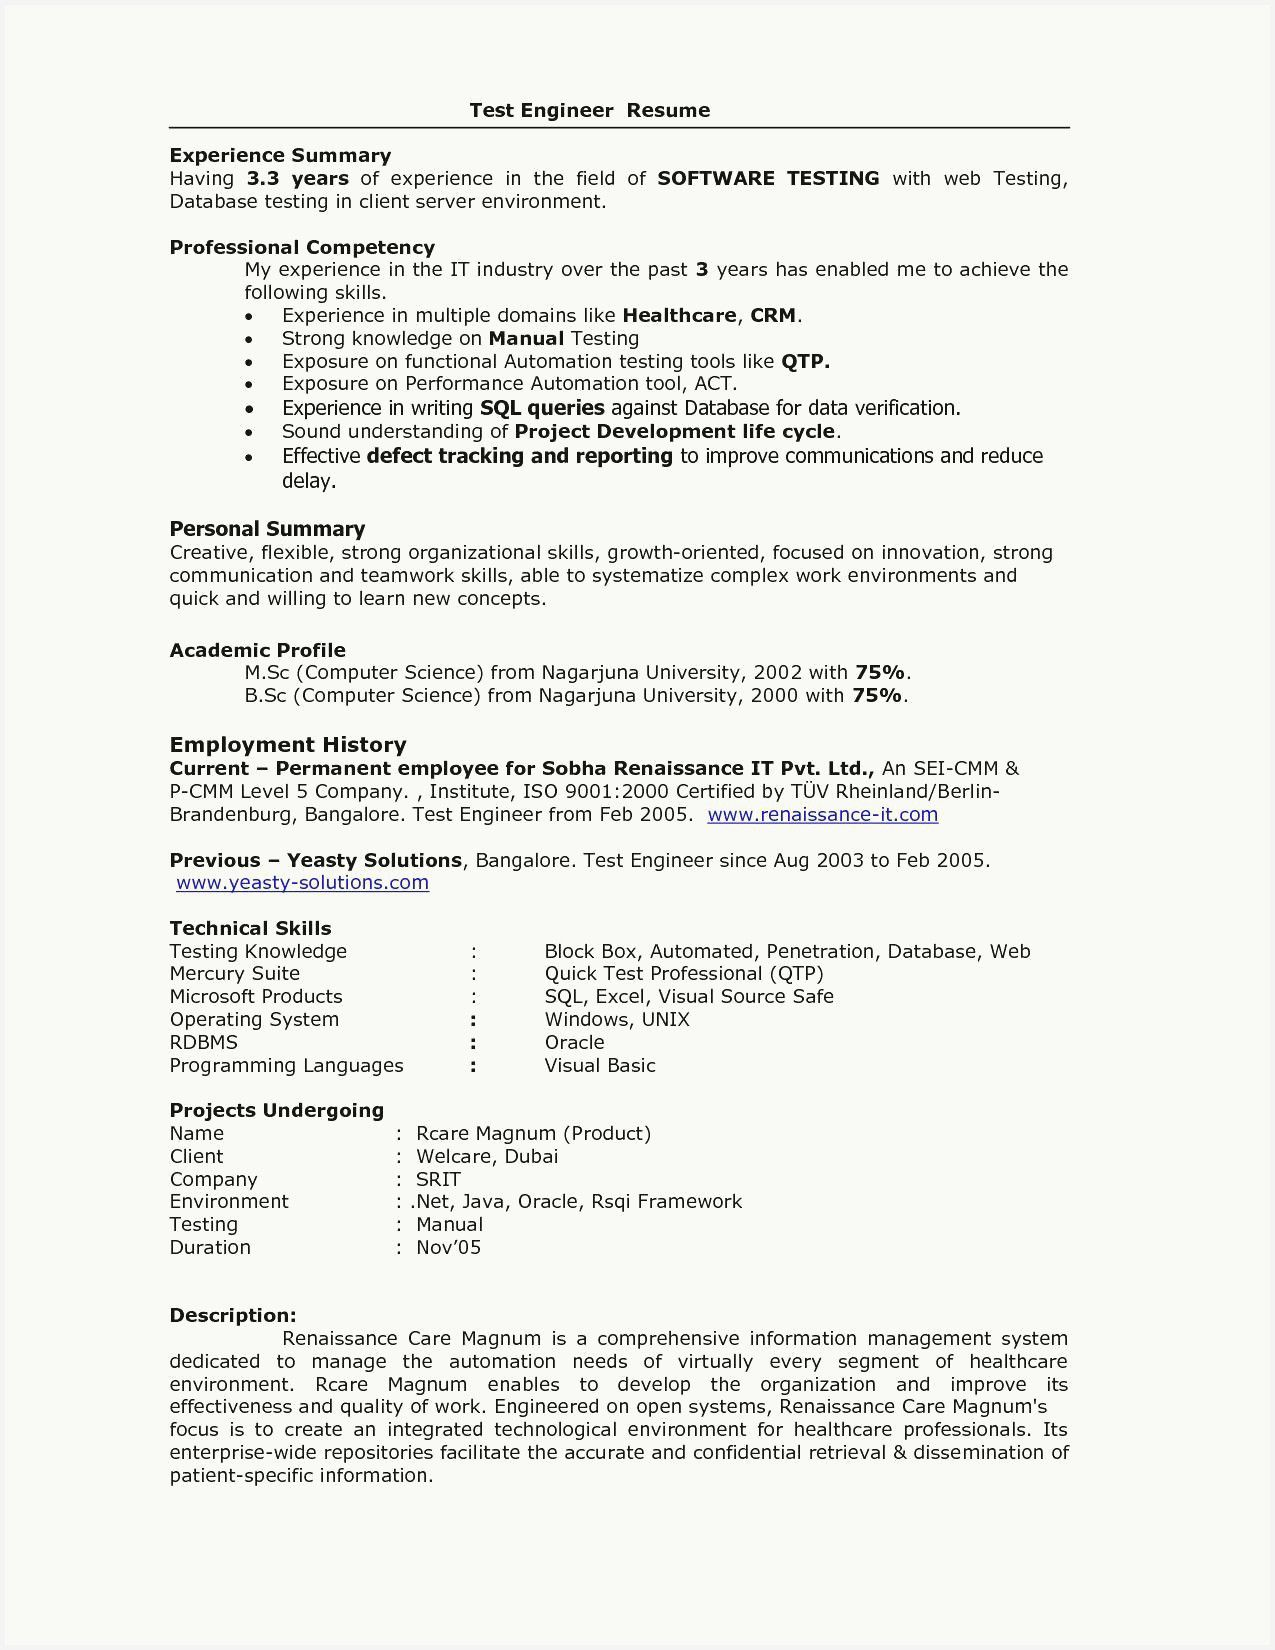 55 example computer science student resume no experience